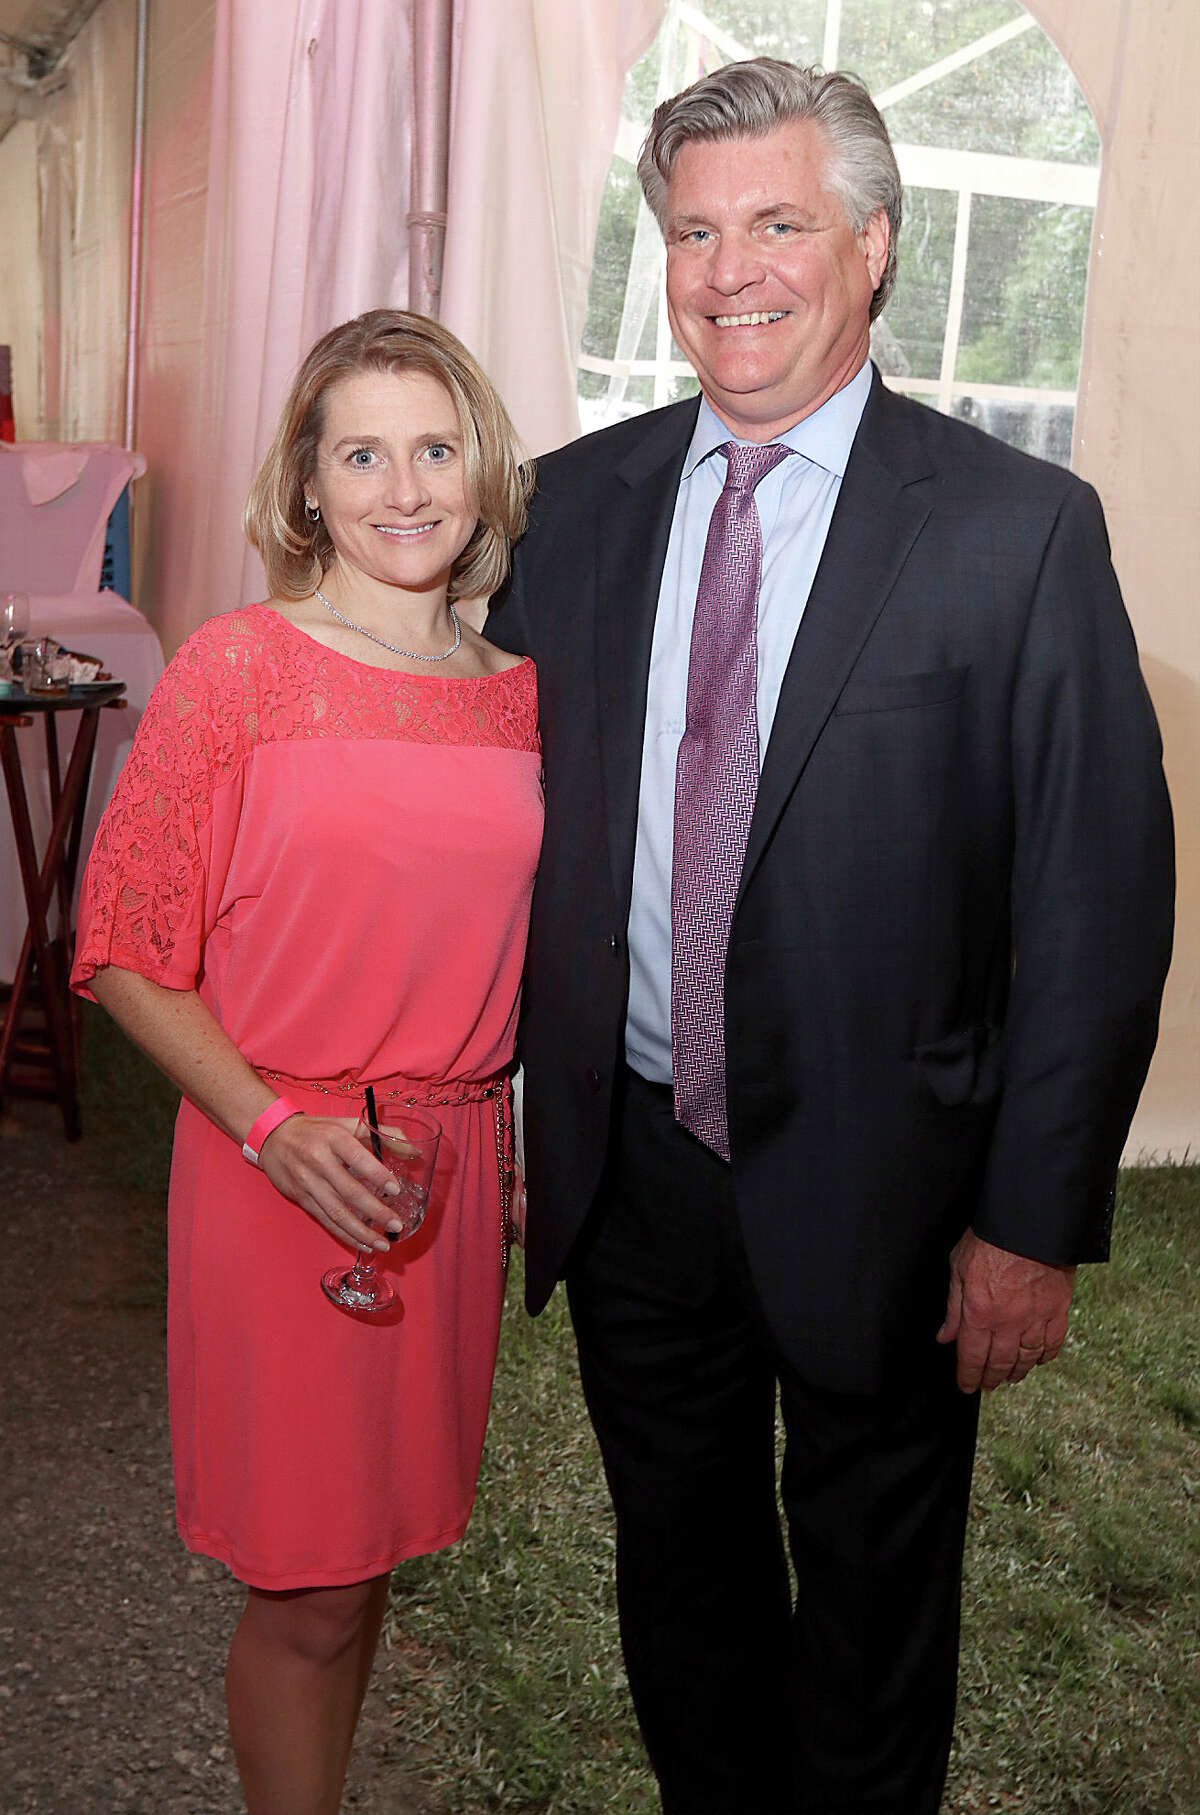 Were you Seen at 'An Aficionado Experience' with special guestNew York Yankee Bernie Williams, a benefit for the Center for Disability Services on Thursday, June 8, 2017, at the Pruyn House in Latham?